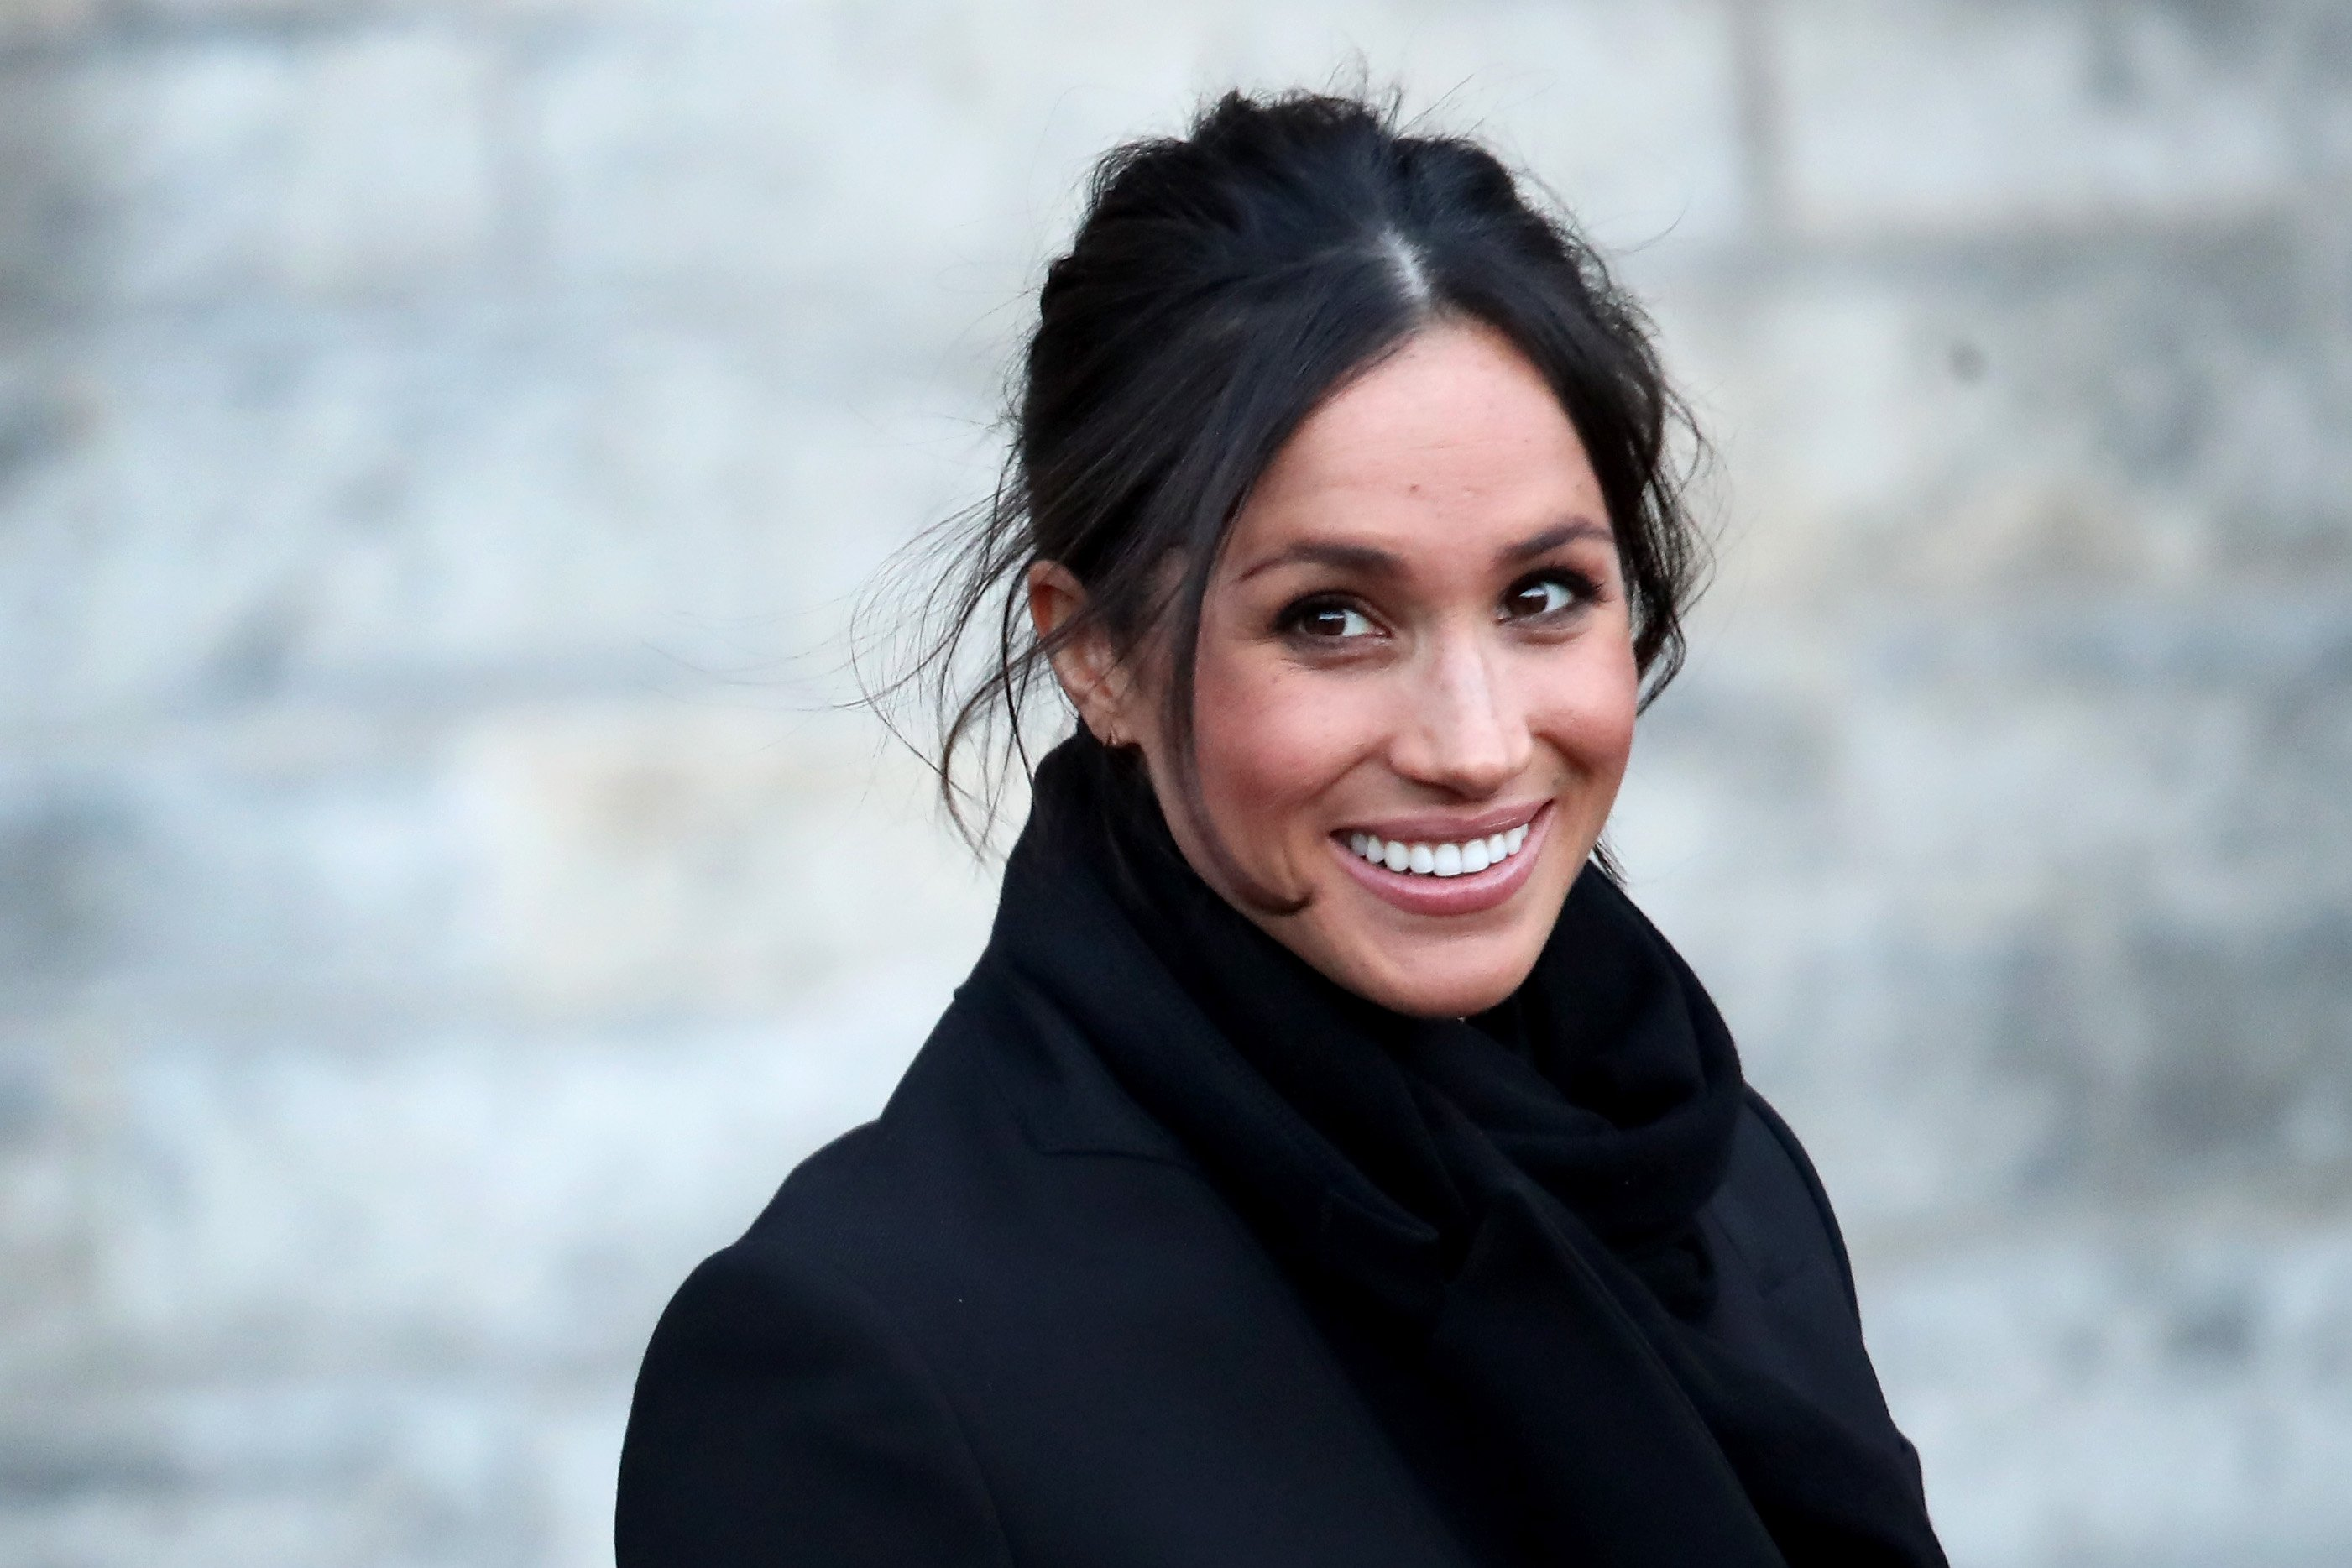 Meghan Markle bei Cardiff Castle am 18. Januar 2018 in Cardiff, Wales. | Quelle: Getty Images